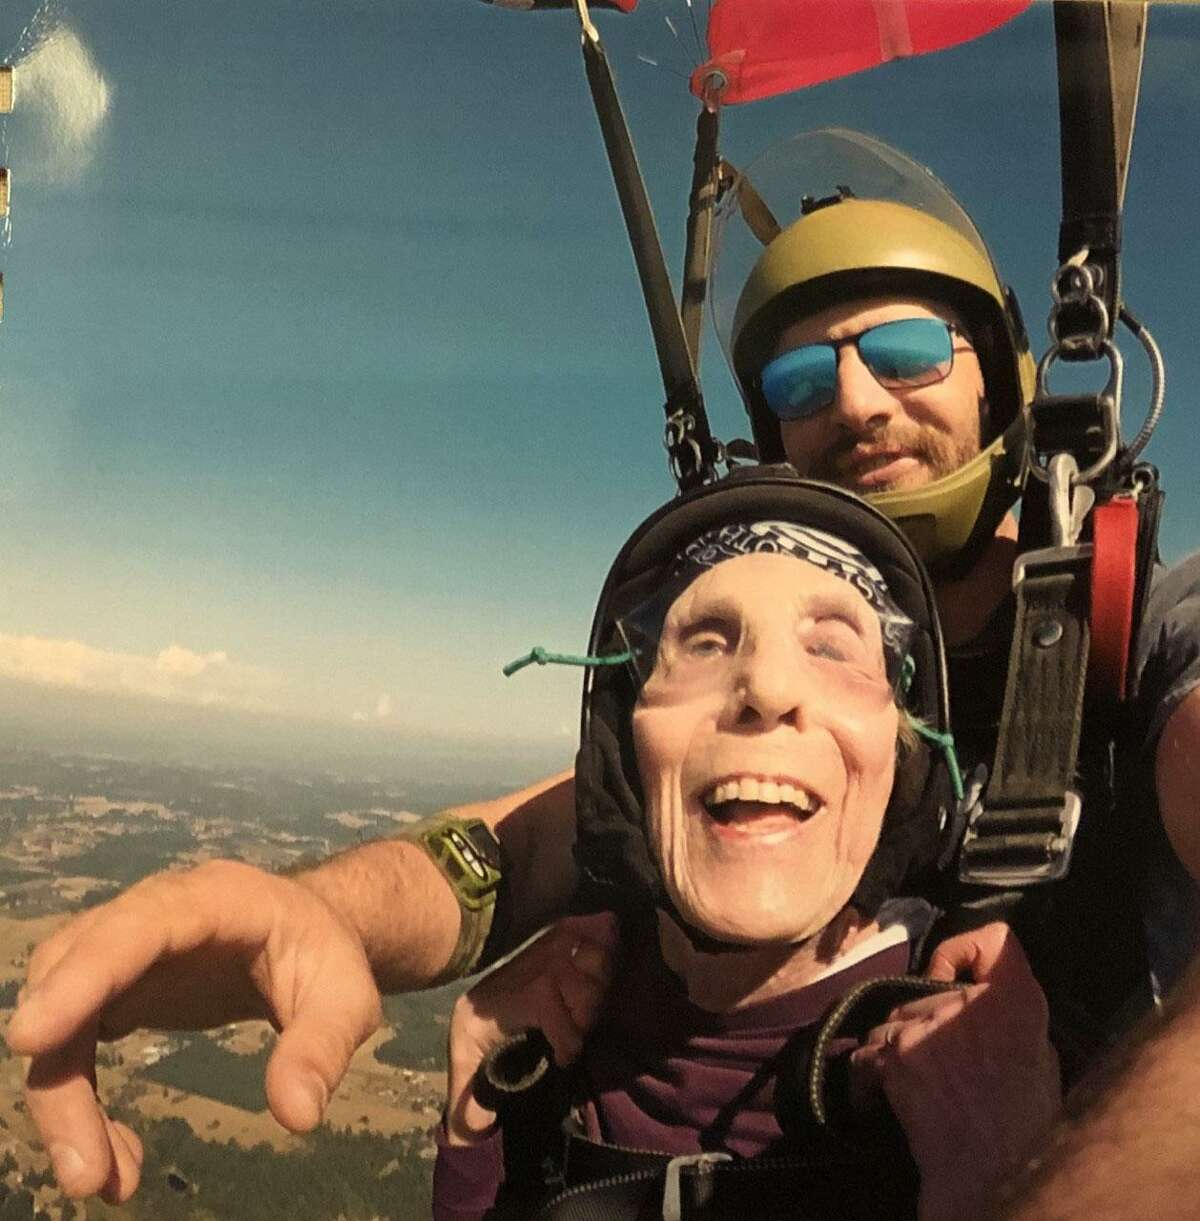 Jan Sansom of New Milford recently went skydiving for the second time. She is shown above with Pacific Northwest Skydiving Center instructor Kevin Rieschel during the dive.